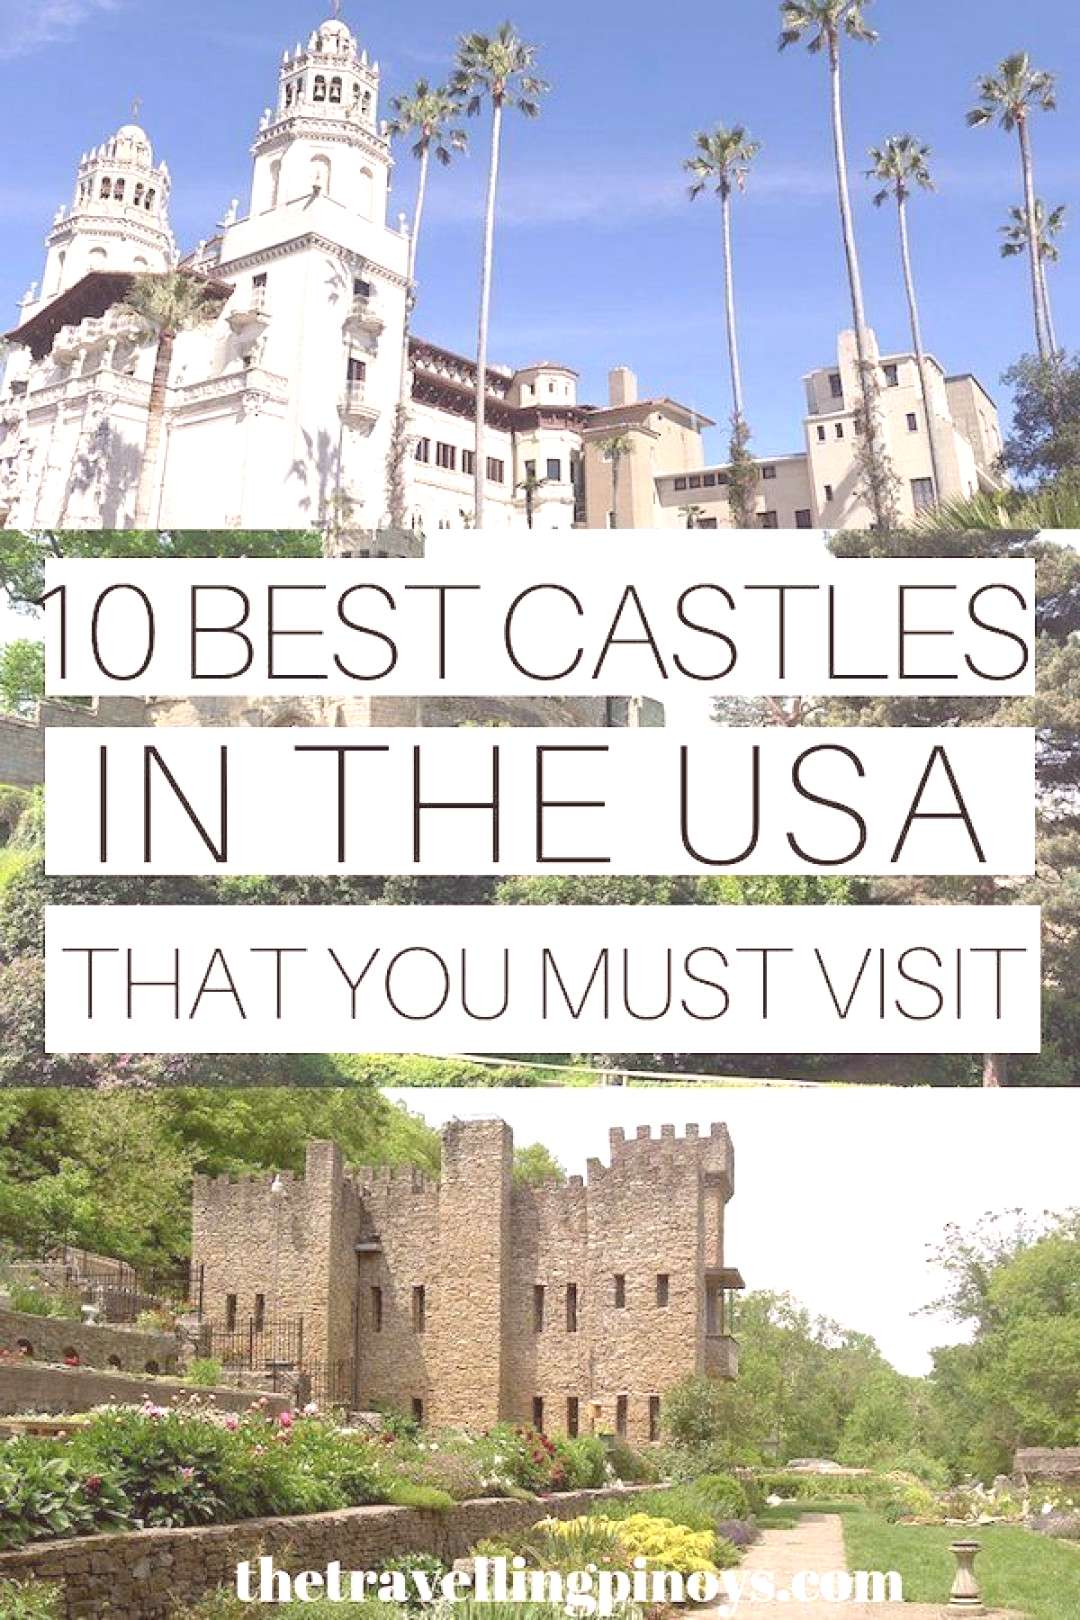 35+ Ultimate Travel Destinations drawing style 10 BEST CASTLES IN THE USA   USA TRAVEL DESTINATIONS